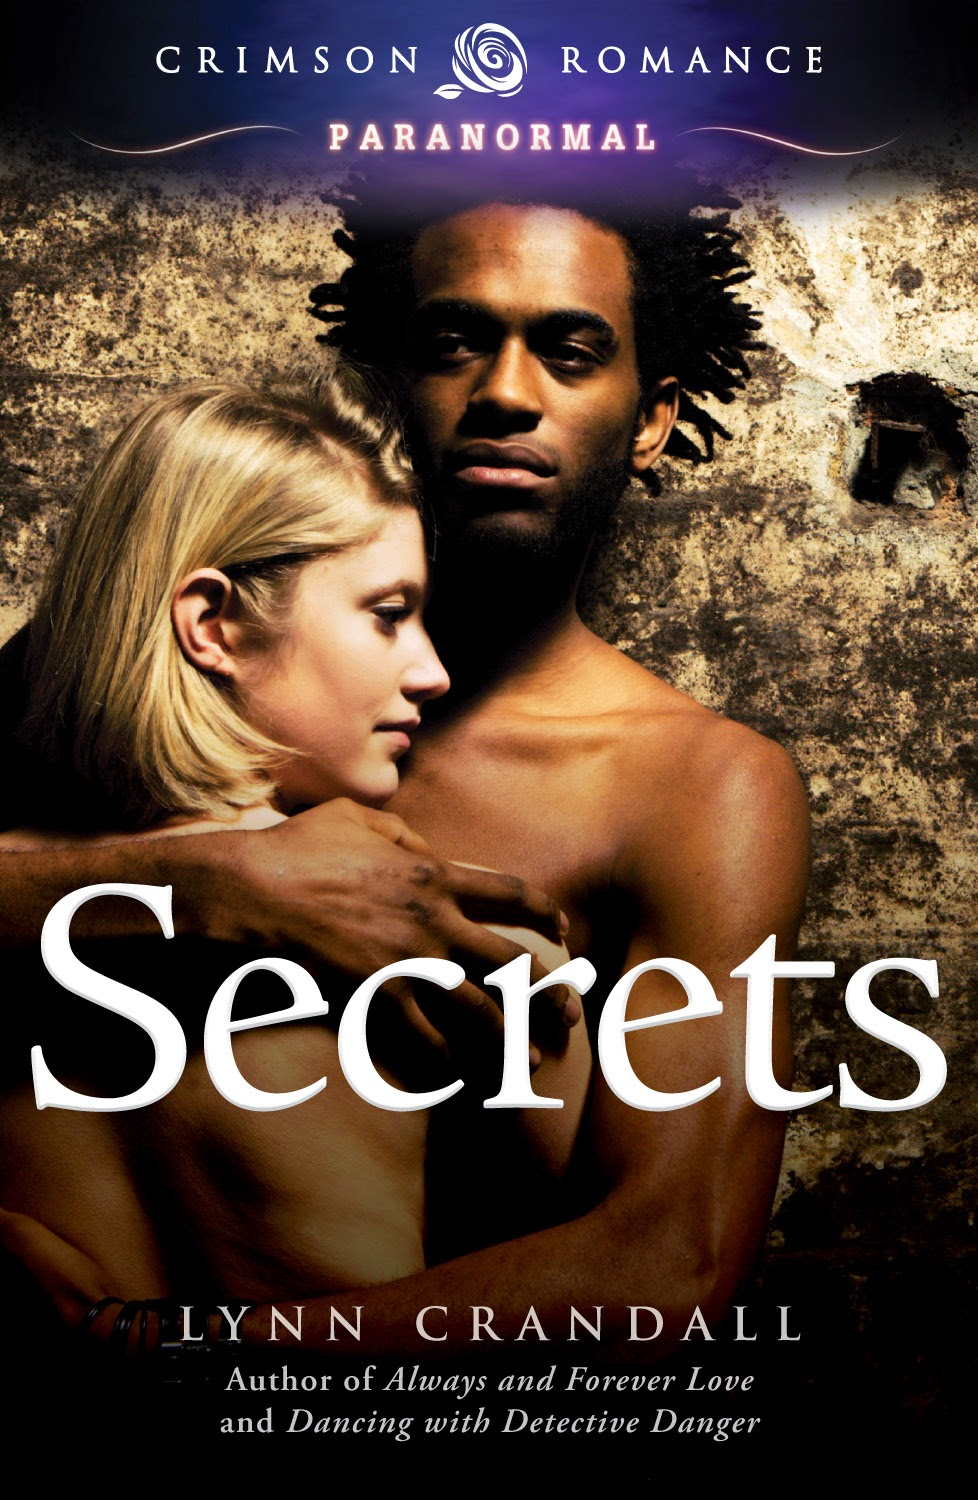 http://www.amazon.com/Secrets-Lynn-Crandall-ebook/dp/B00NQF0LO6/ref=sr_1_1?s=books&ie=UTF8&qid=1413072244&sr=1-1&keywords=secrets+lynn+crandall